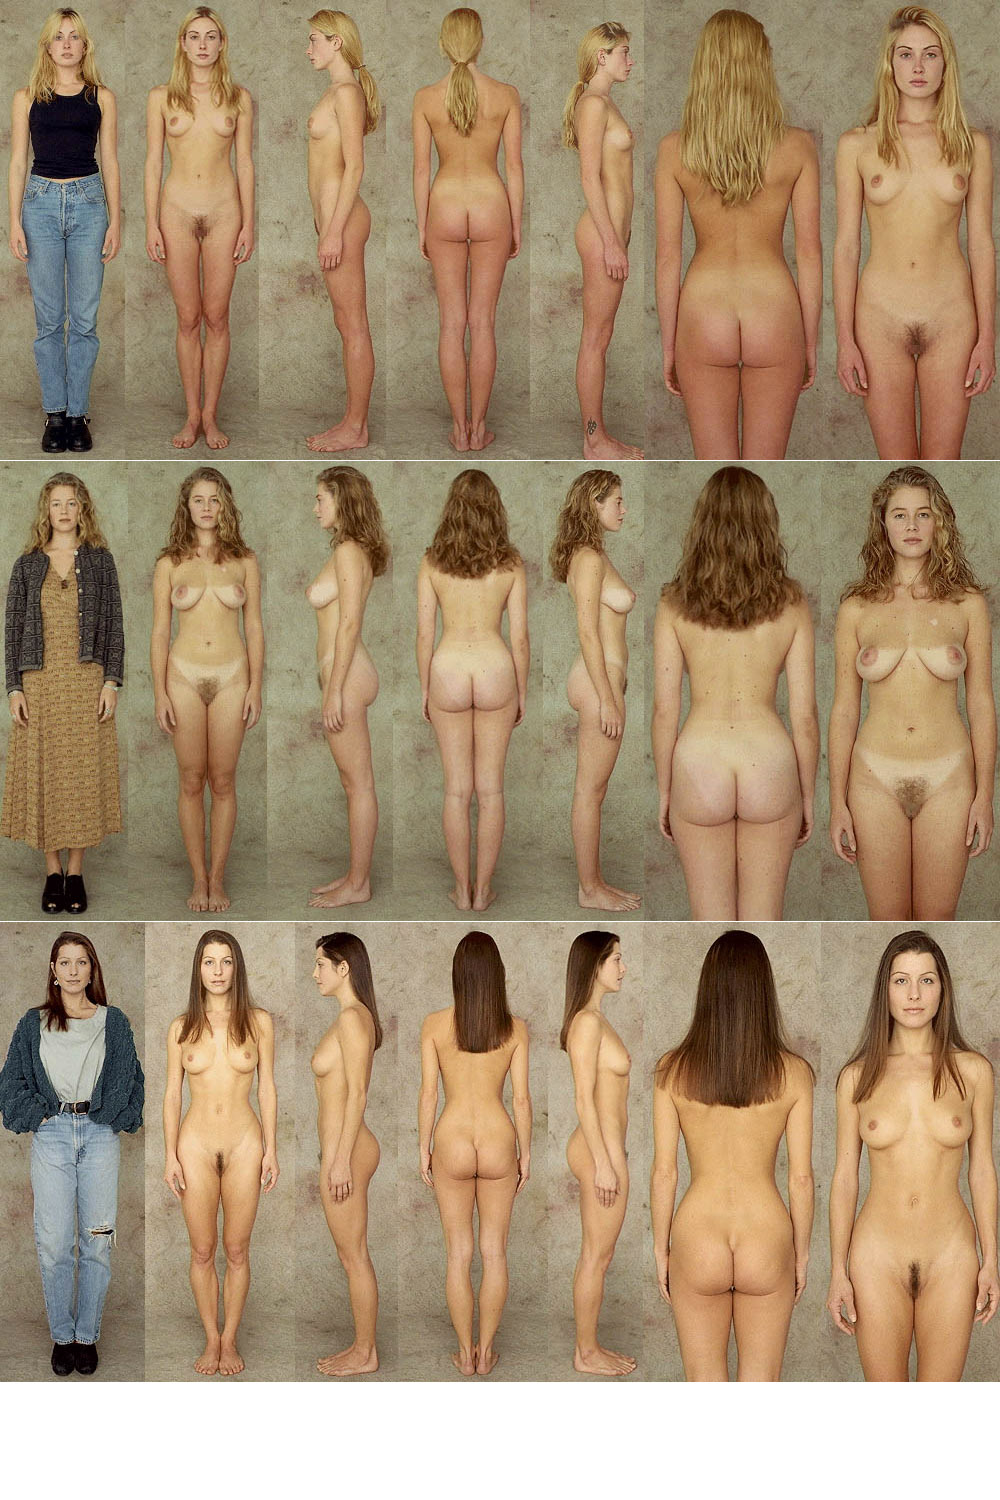 Naked women different body types pictures